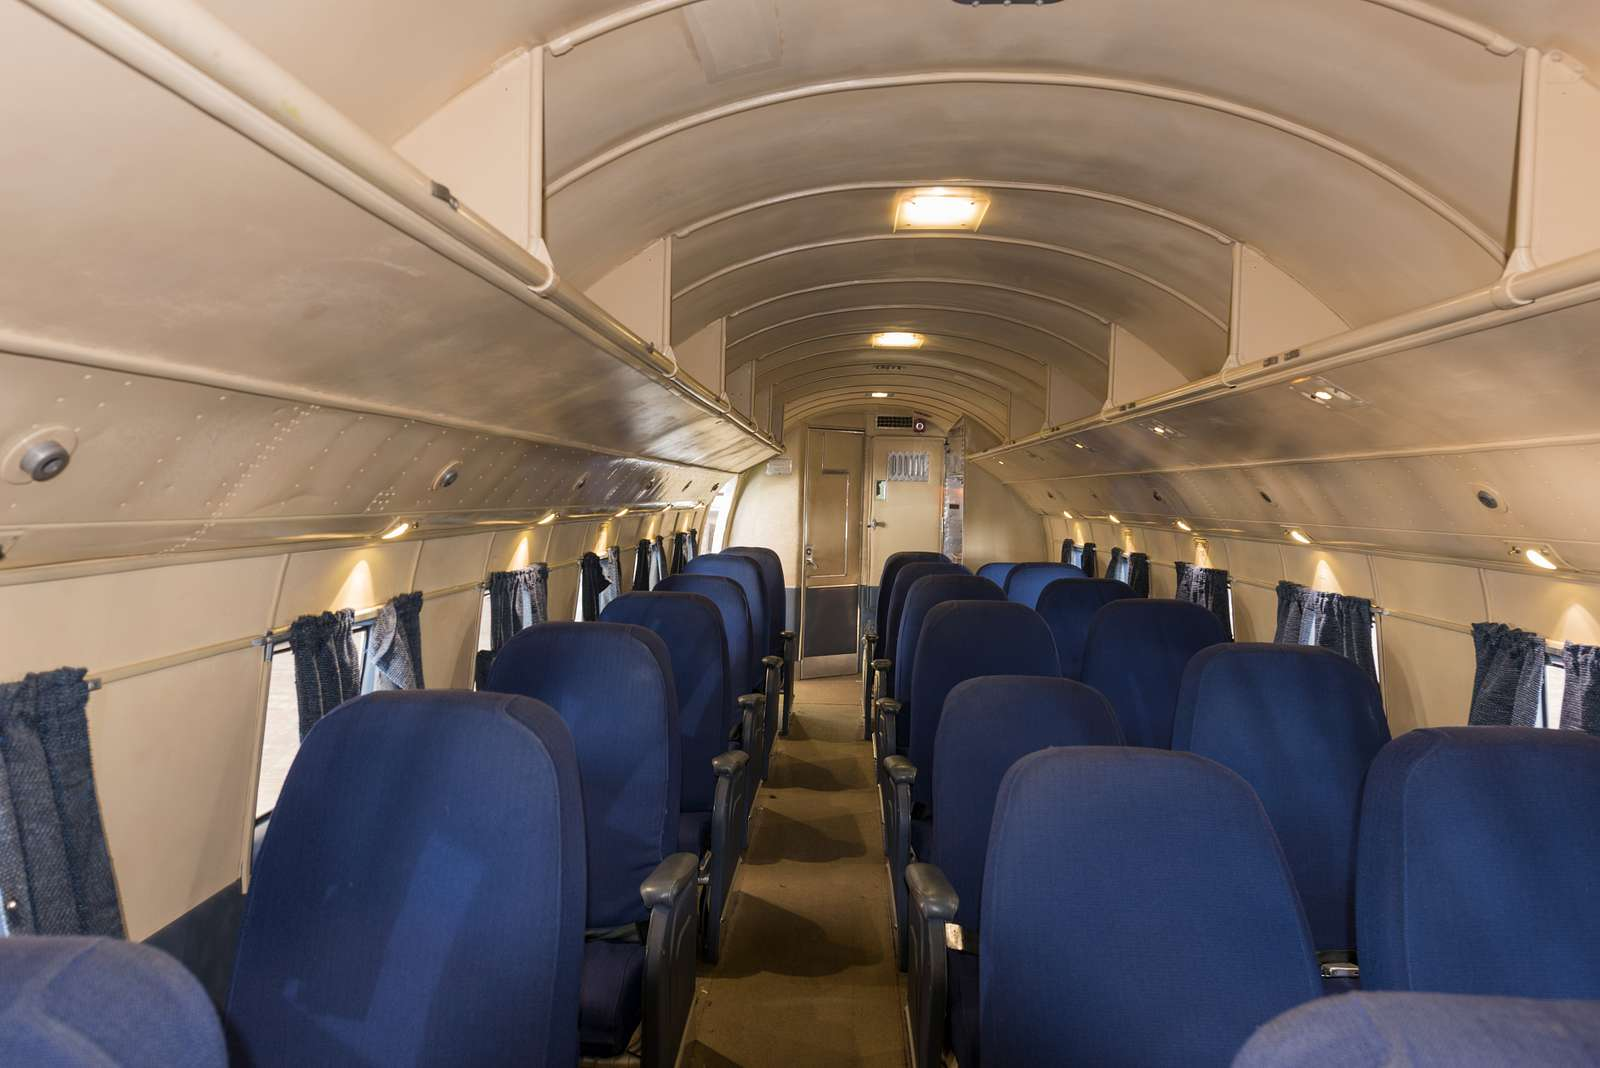 Passenger cabin of the Flagship Knoxville, a fully restored DC-3 aircraft at the American Airlines C.R. Smith Museum on the campus of the American Airlines Flight Academy, at the southern end of DFW International Airport near the world headquarters of American Airlines